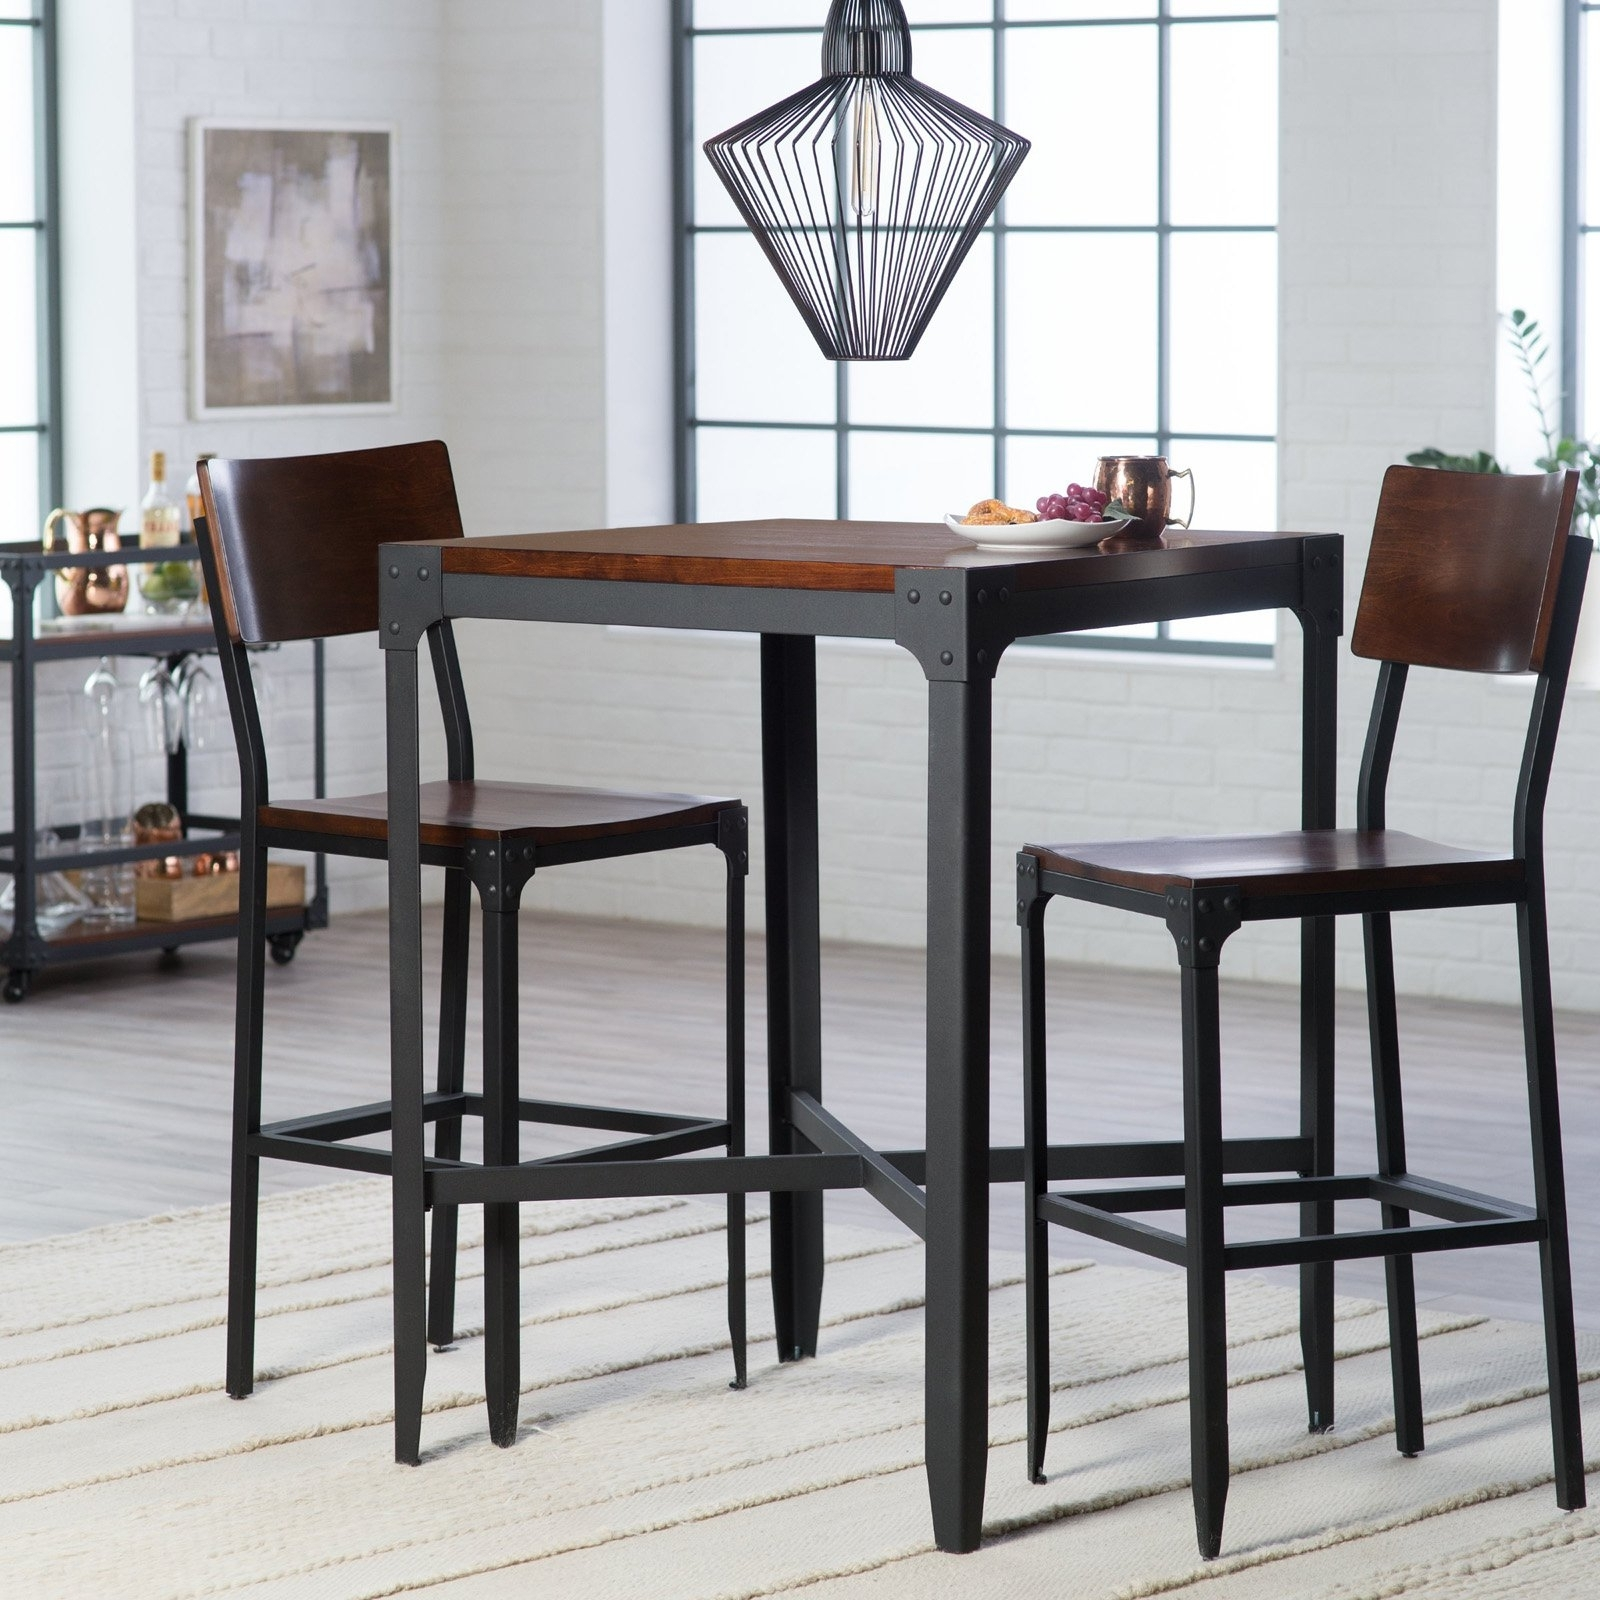 Recent 54 Bar Height Pub Table Sets, Small Dining Tables For 2 Our Top 6 intended for Palazzo 3 Piece Dining Table Sets